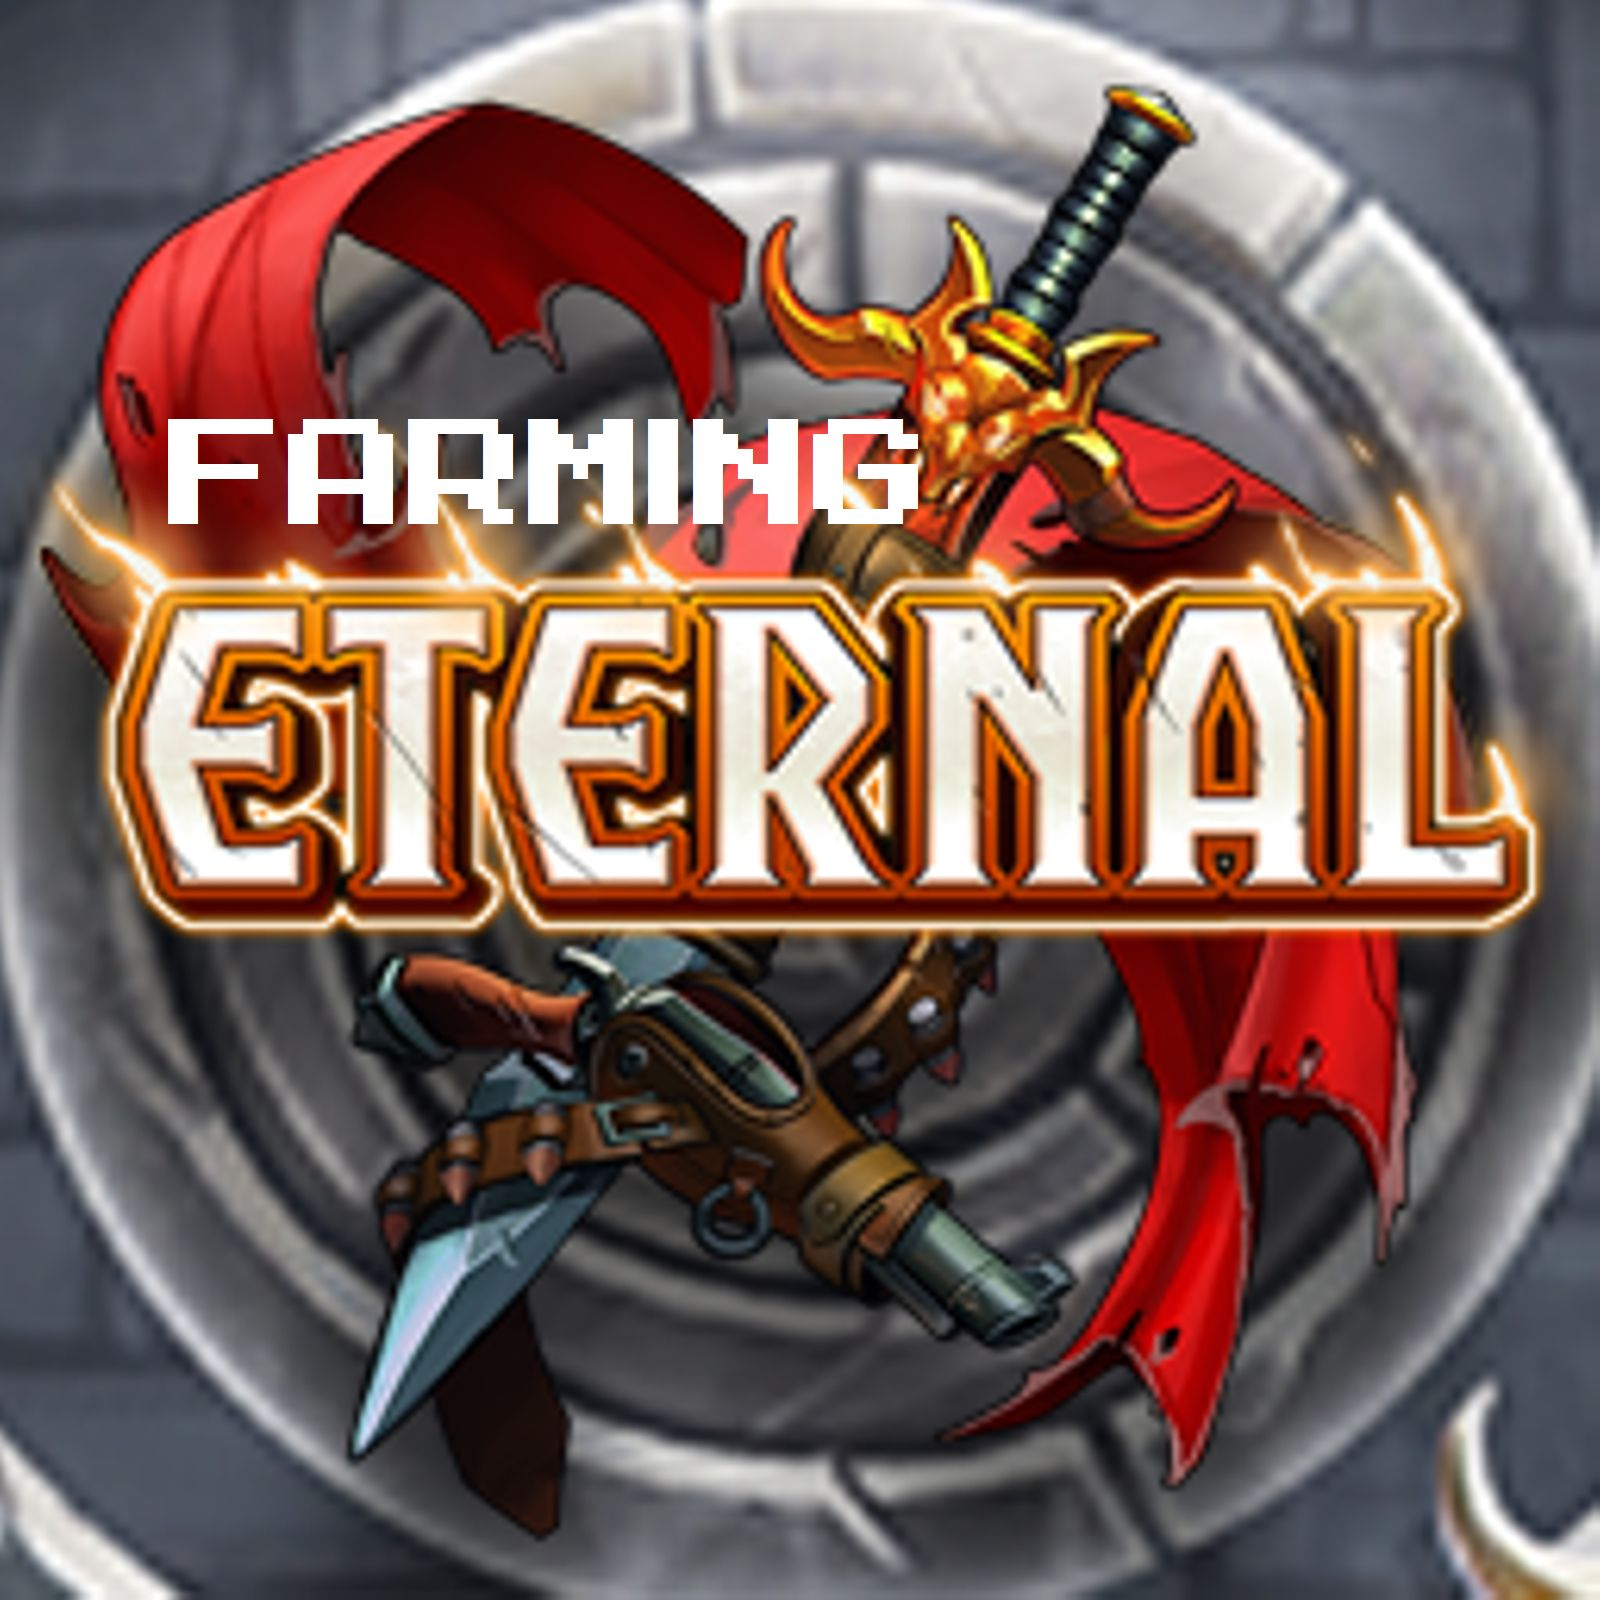 Farming Eternal